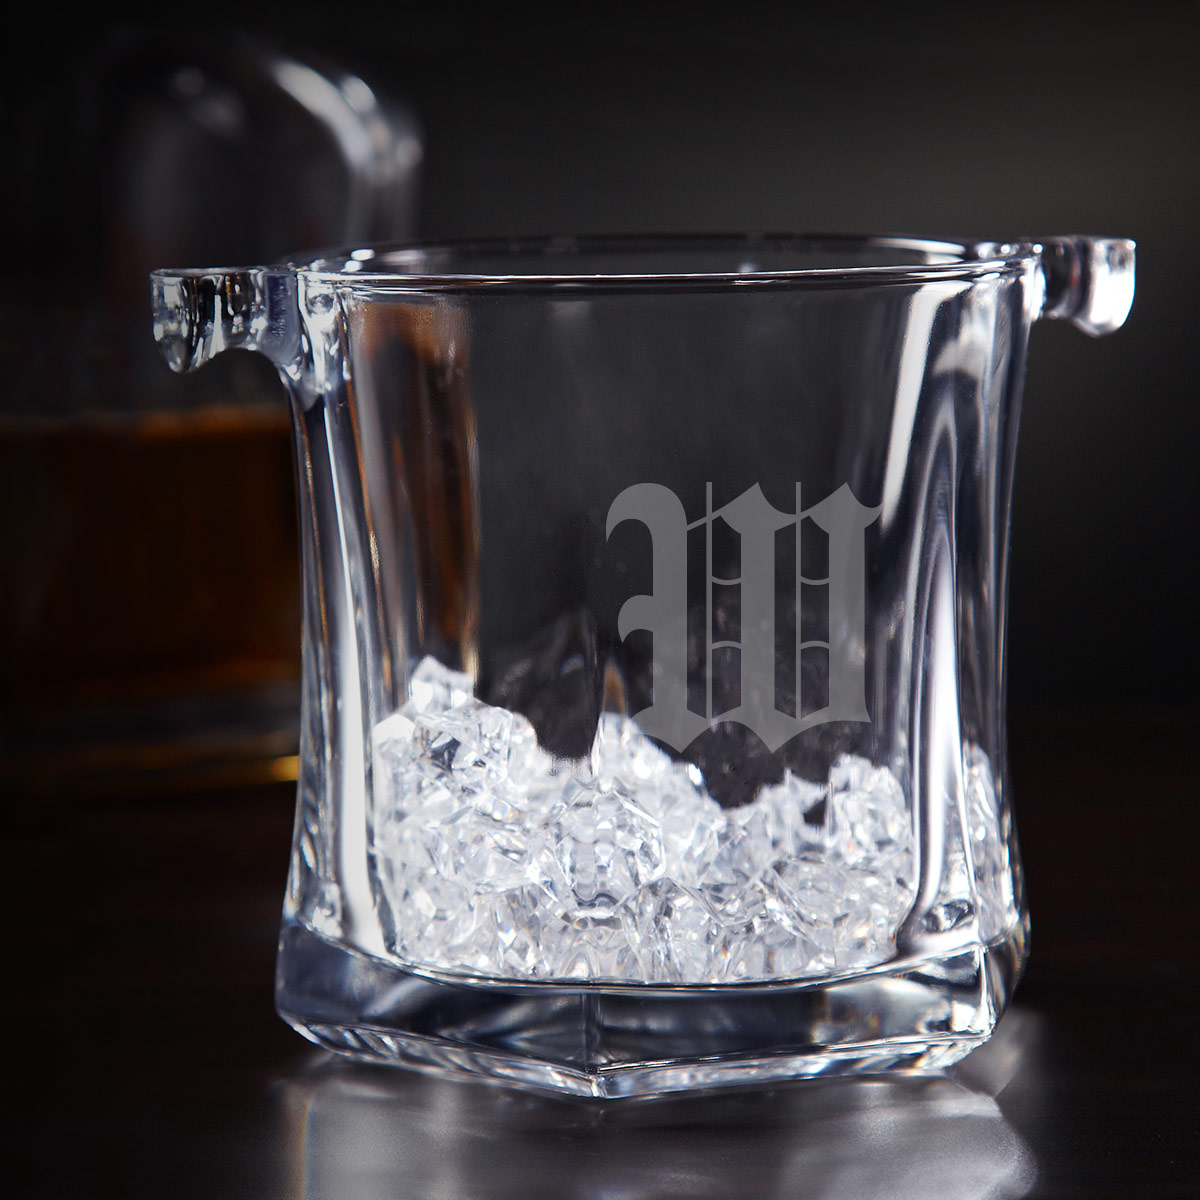 p2834-just-chilled-personalized-glass-ice-bucket38465